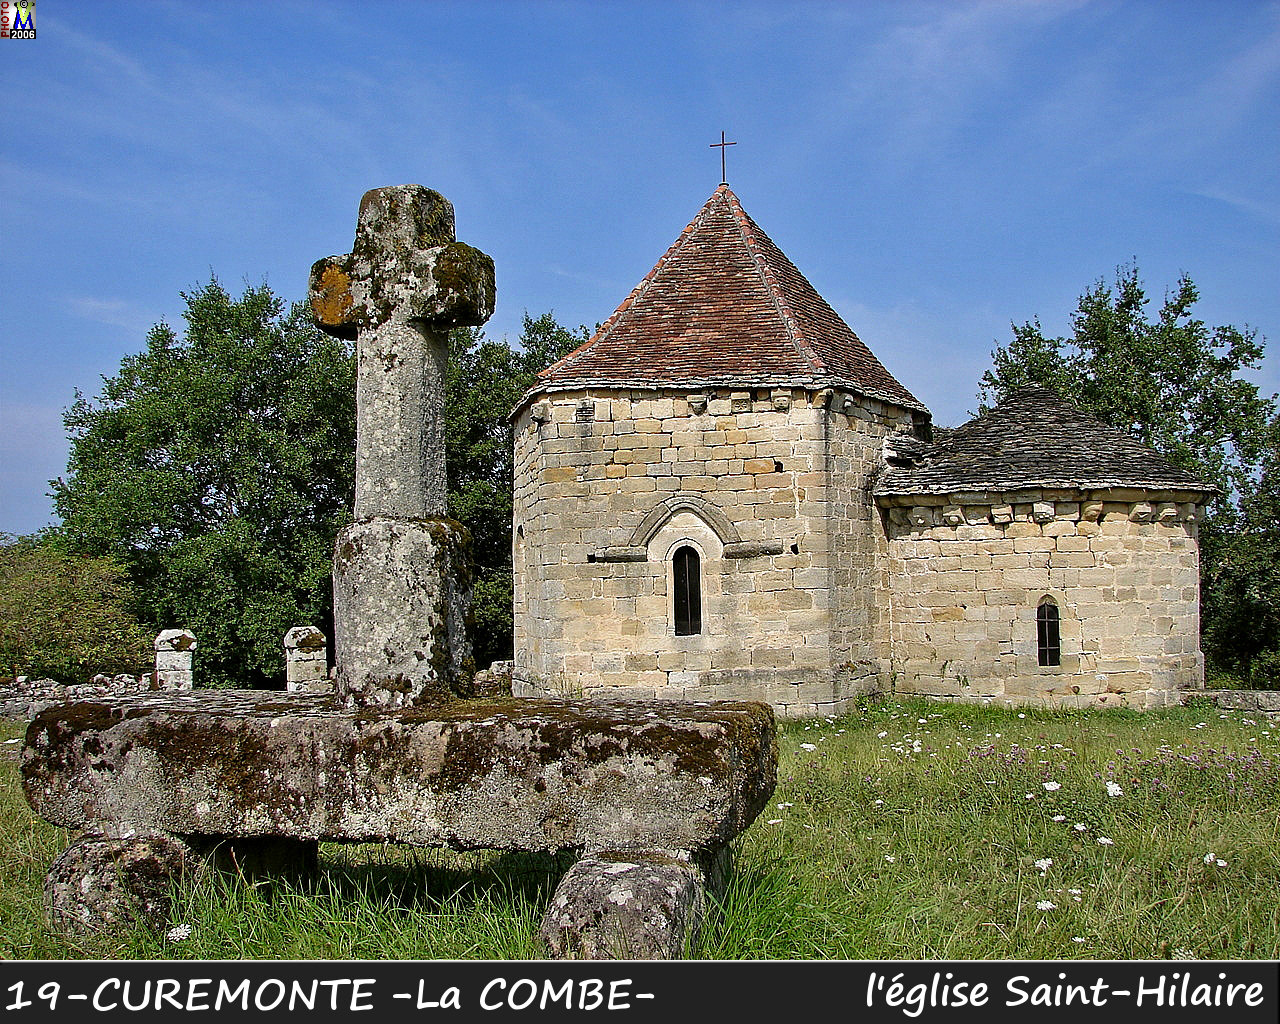 19CUREMONTEzCOMBE_eglise_100.jpg